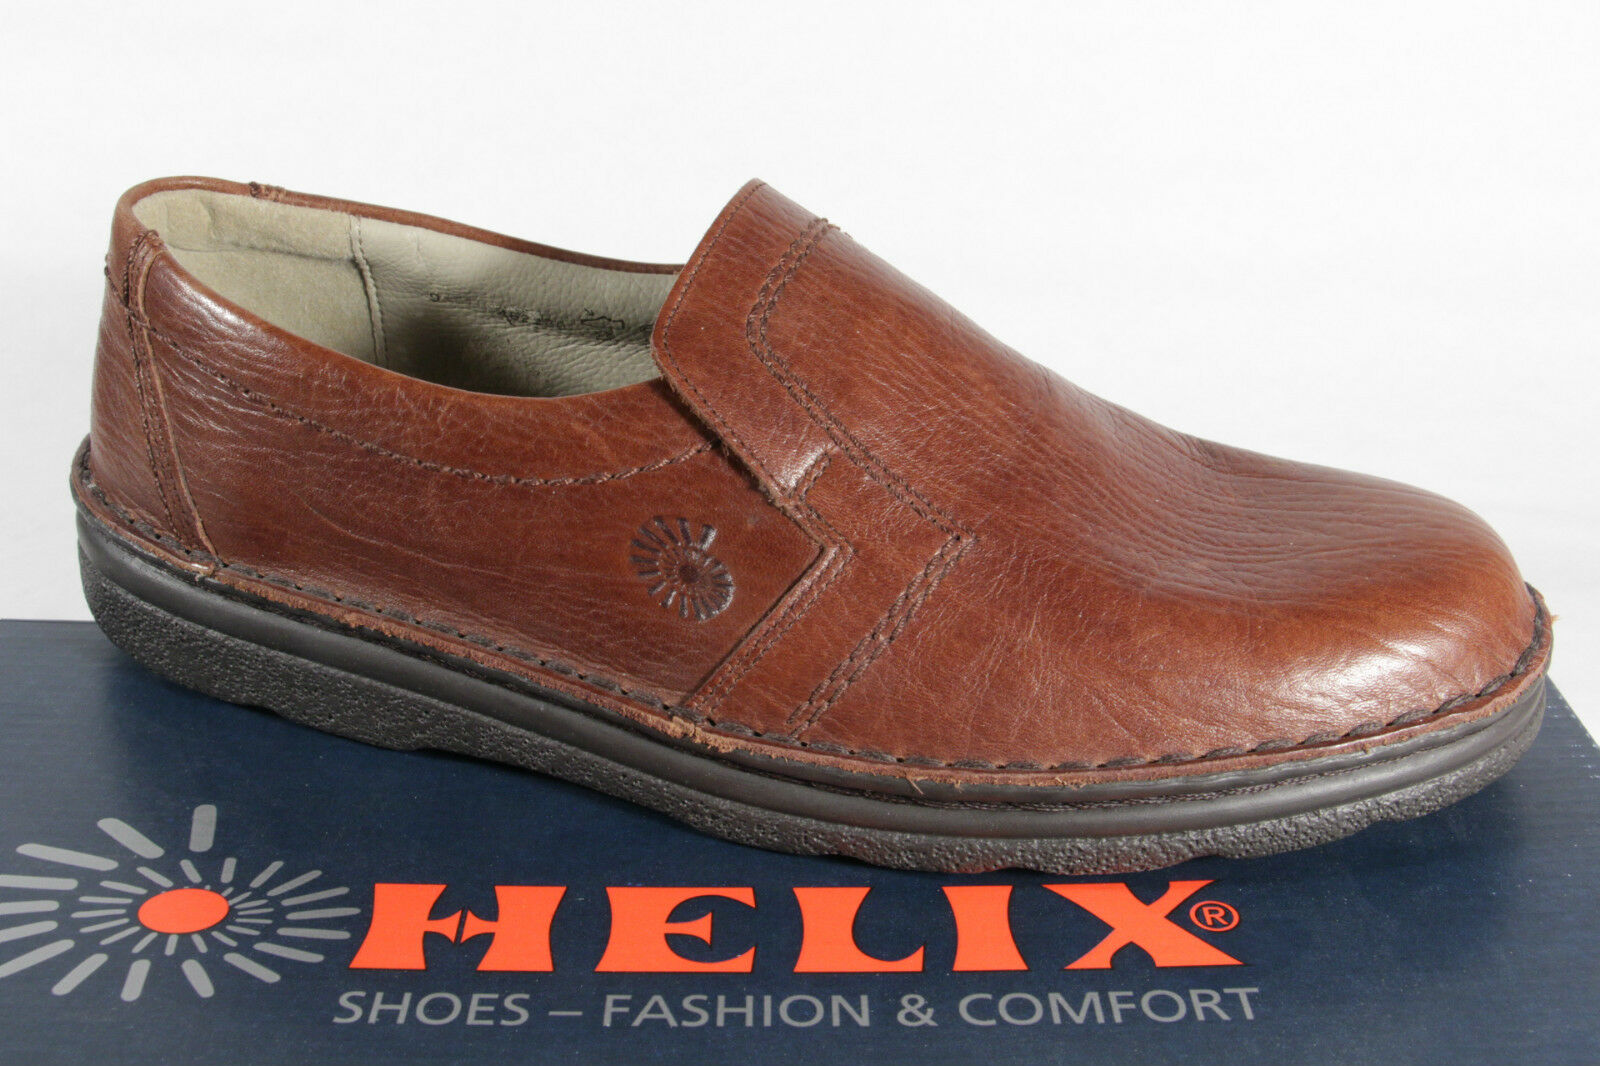 Helix Men's Slippers, Low shoes Brown, New